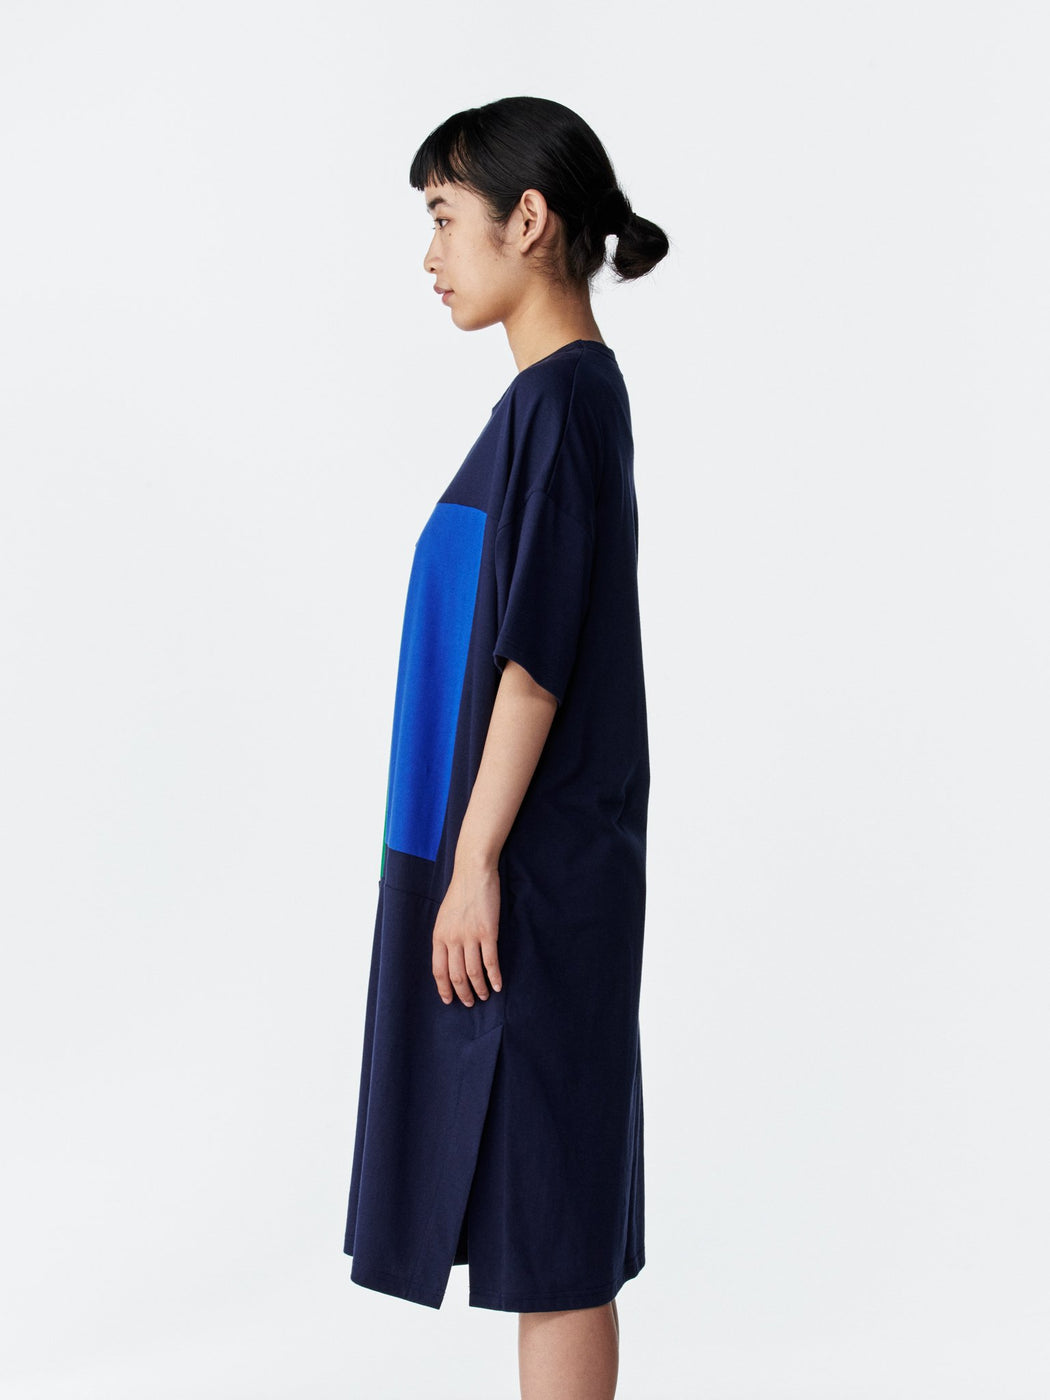 ALOYE Color Block Women's Short Sleeve T-shirt Dress Navy-Blue-Green